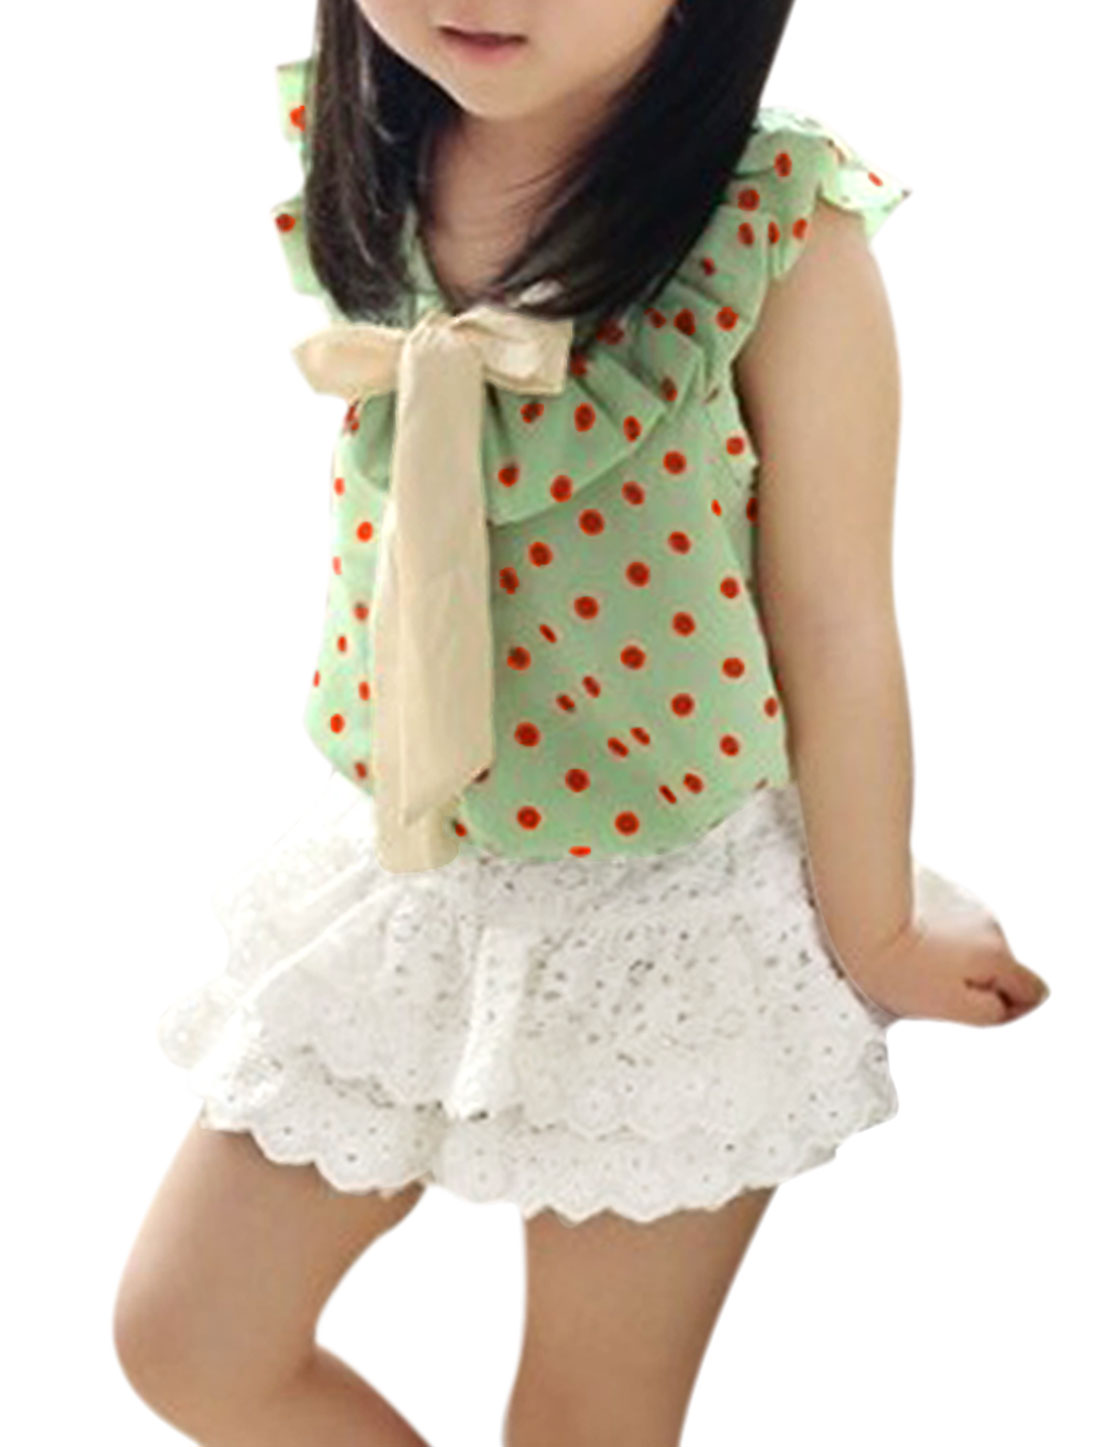 Child Girls Sleeveless Dots Pattern Top w Flower Design Crochet Skort Light Green White US Size 5